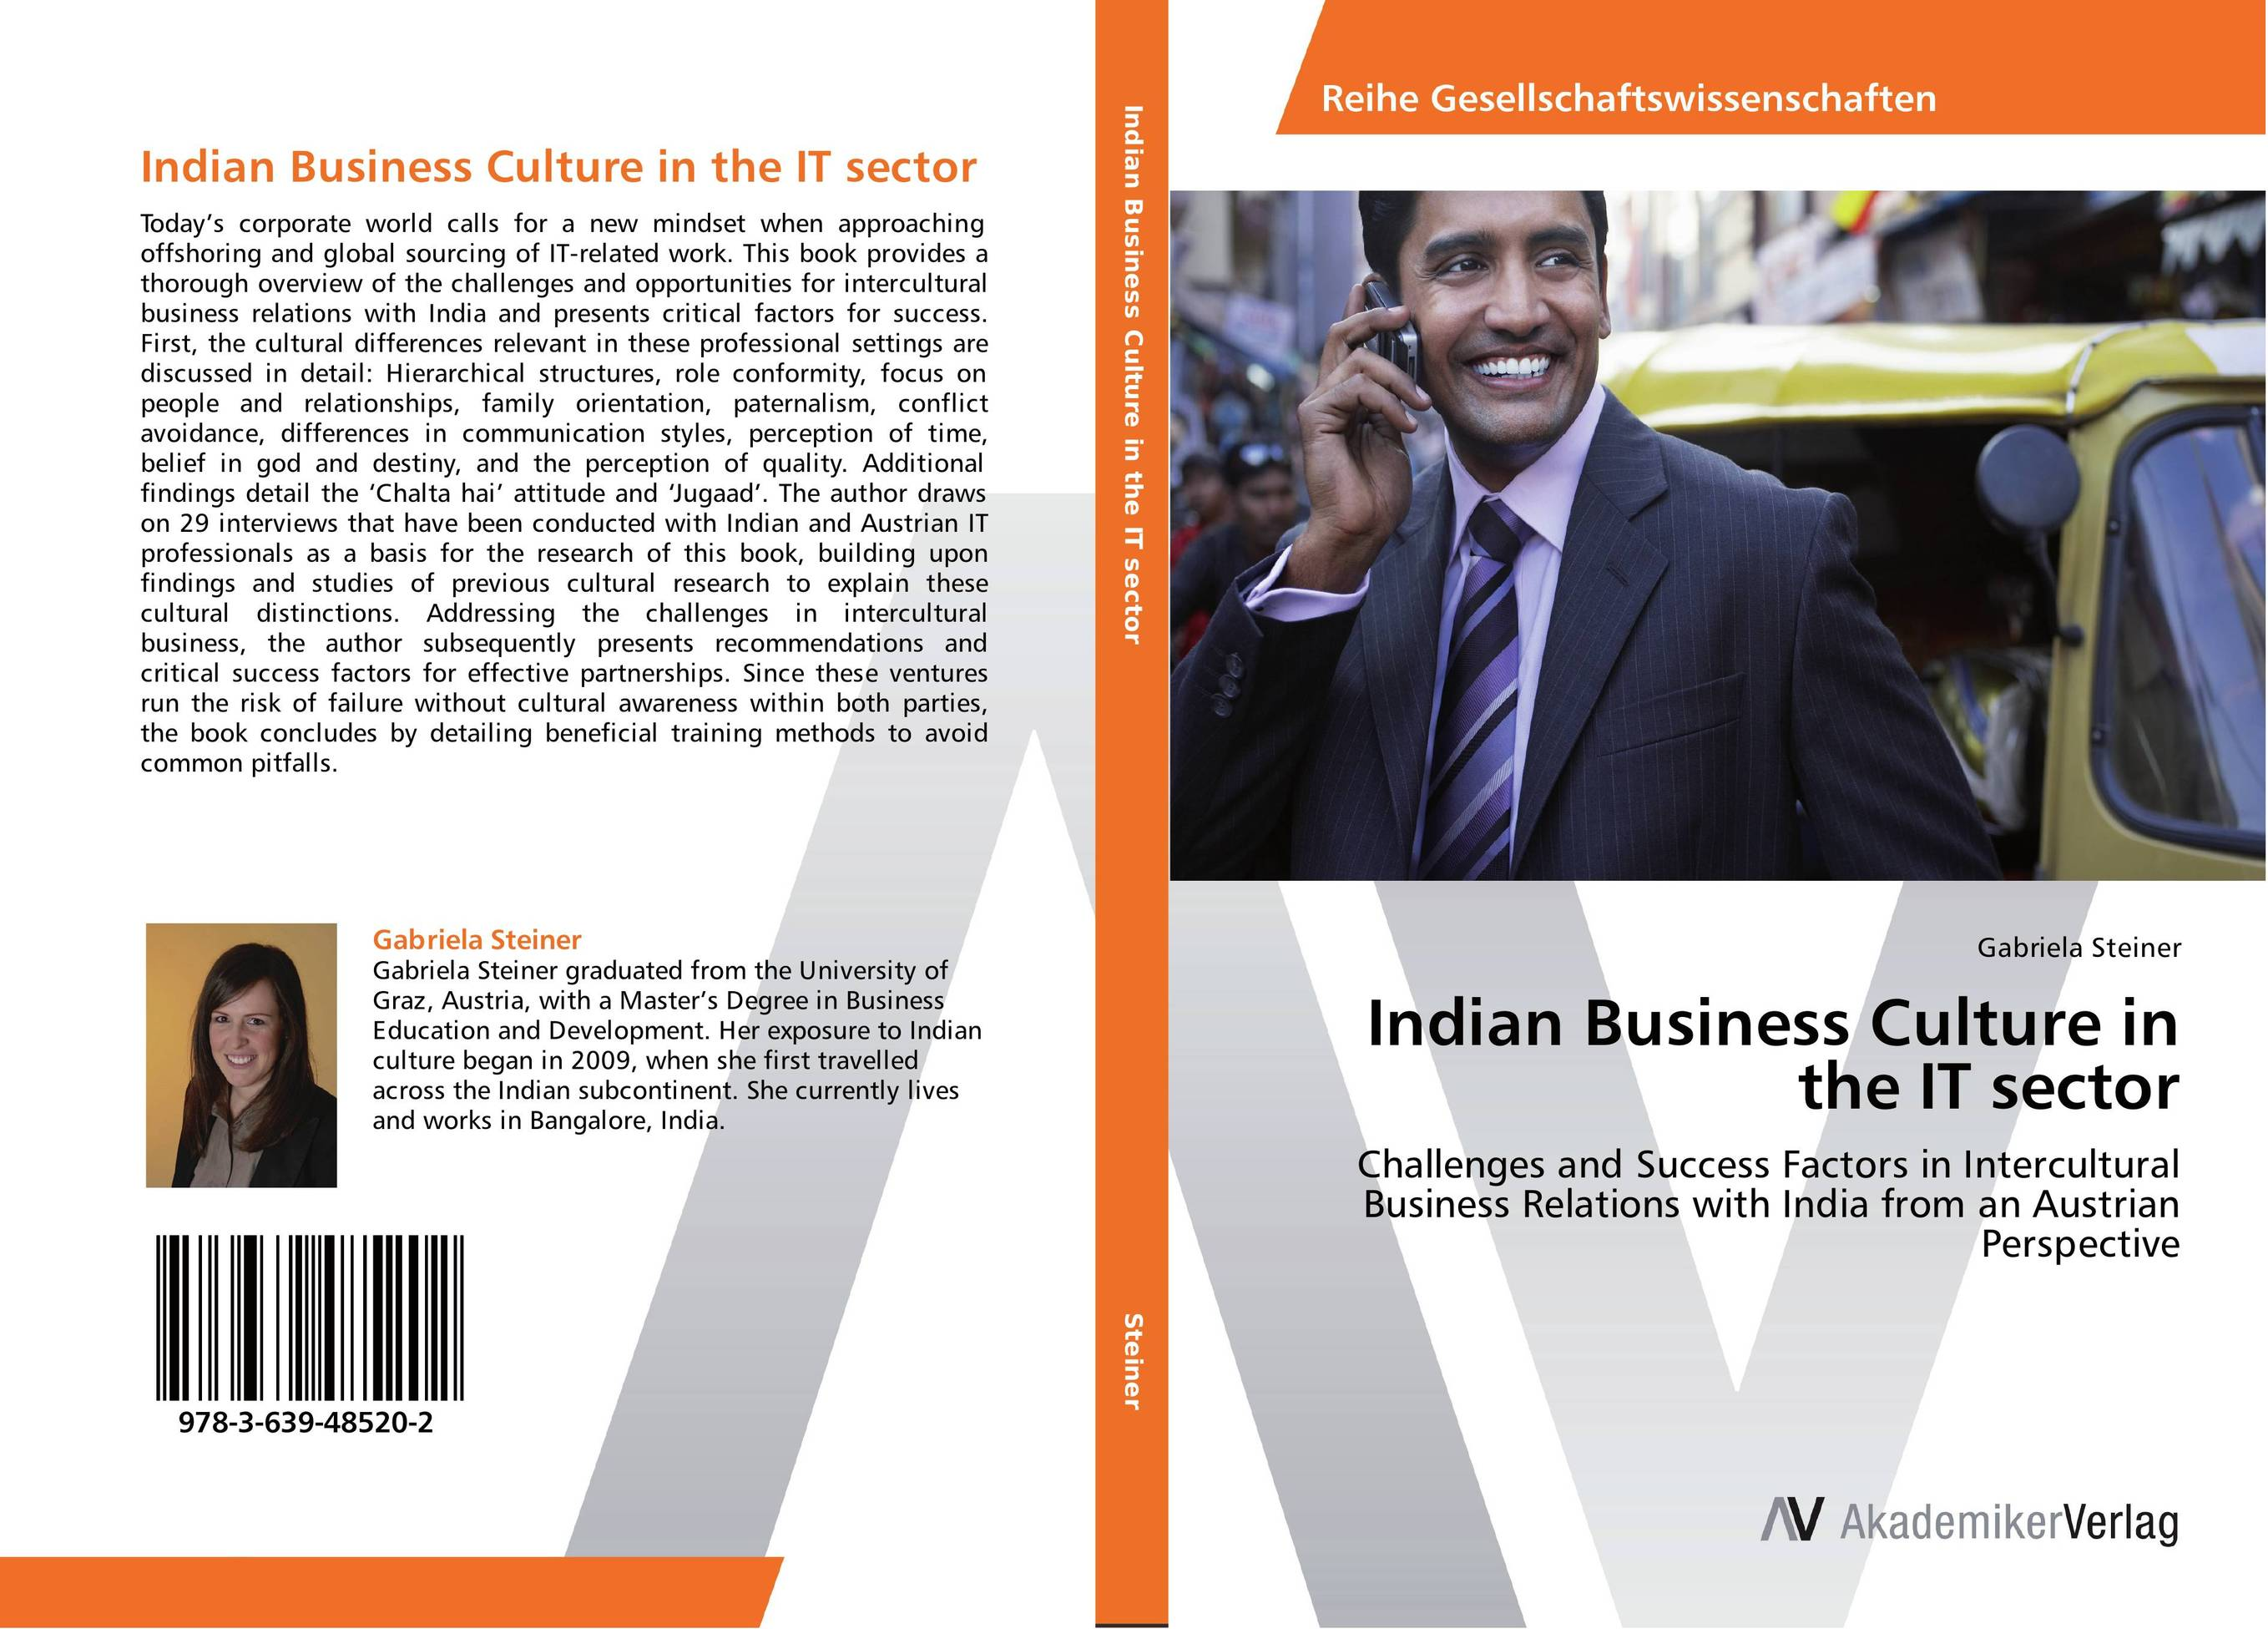 Indian Business Culture in the IT sector